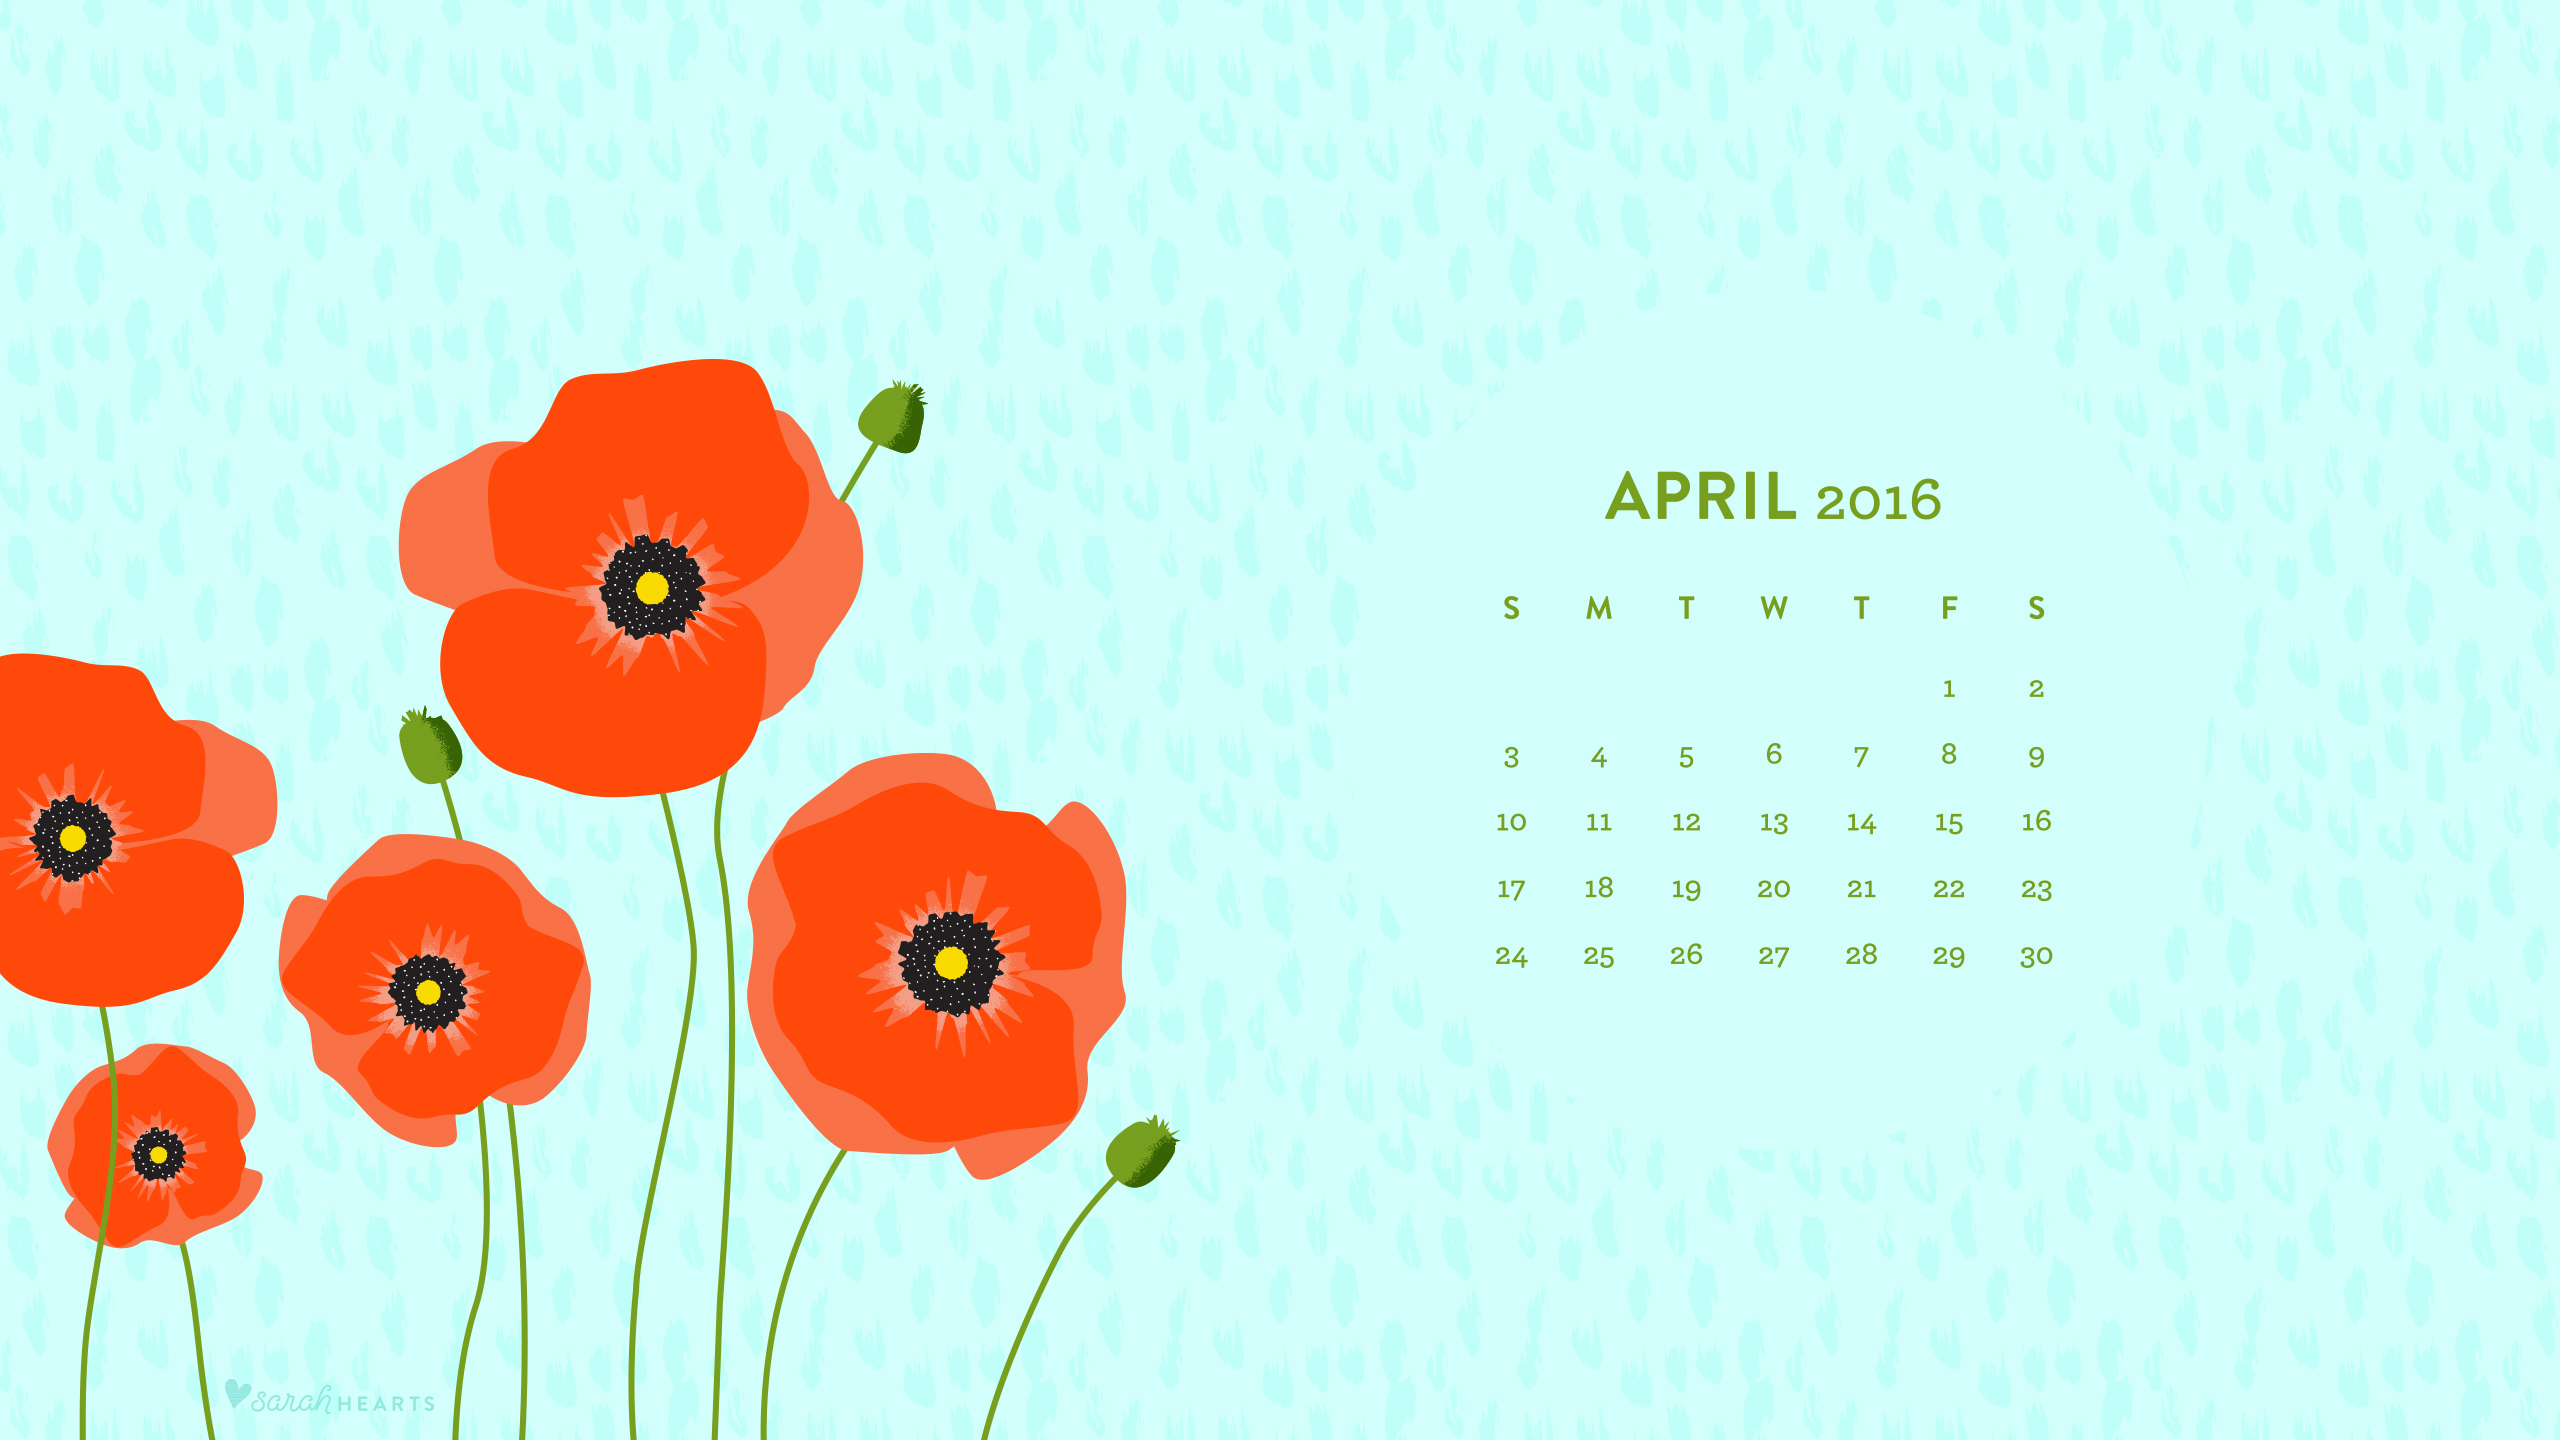 April 2016 Poppy Calendar Wallpaper Sarah Hearts